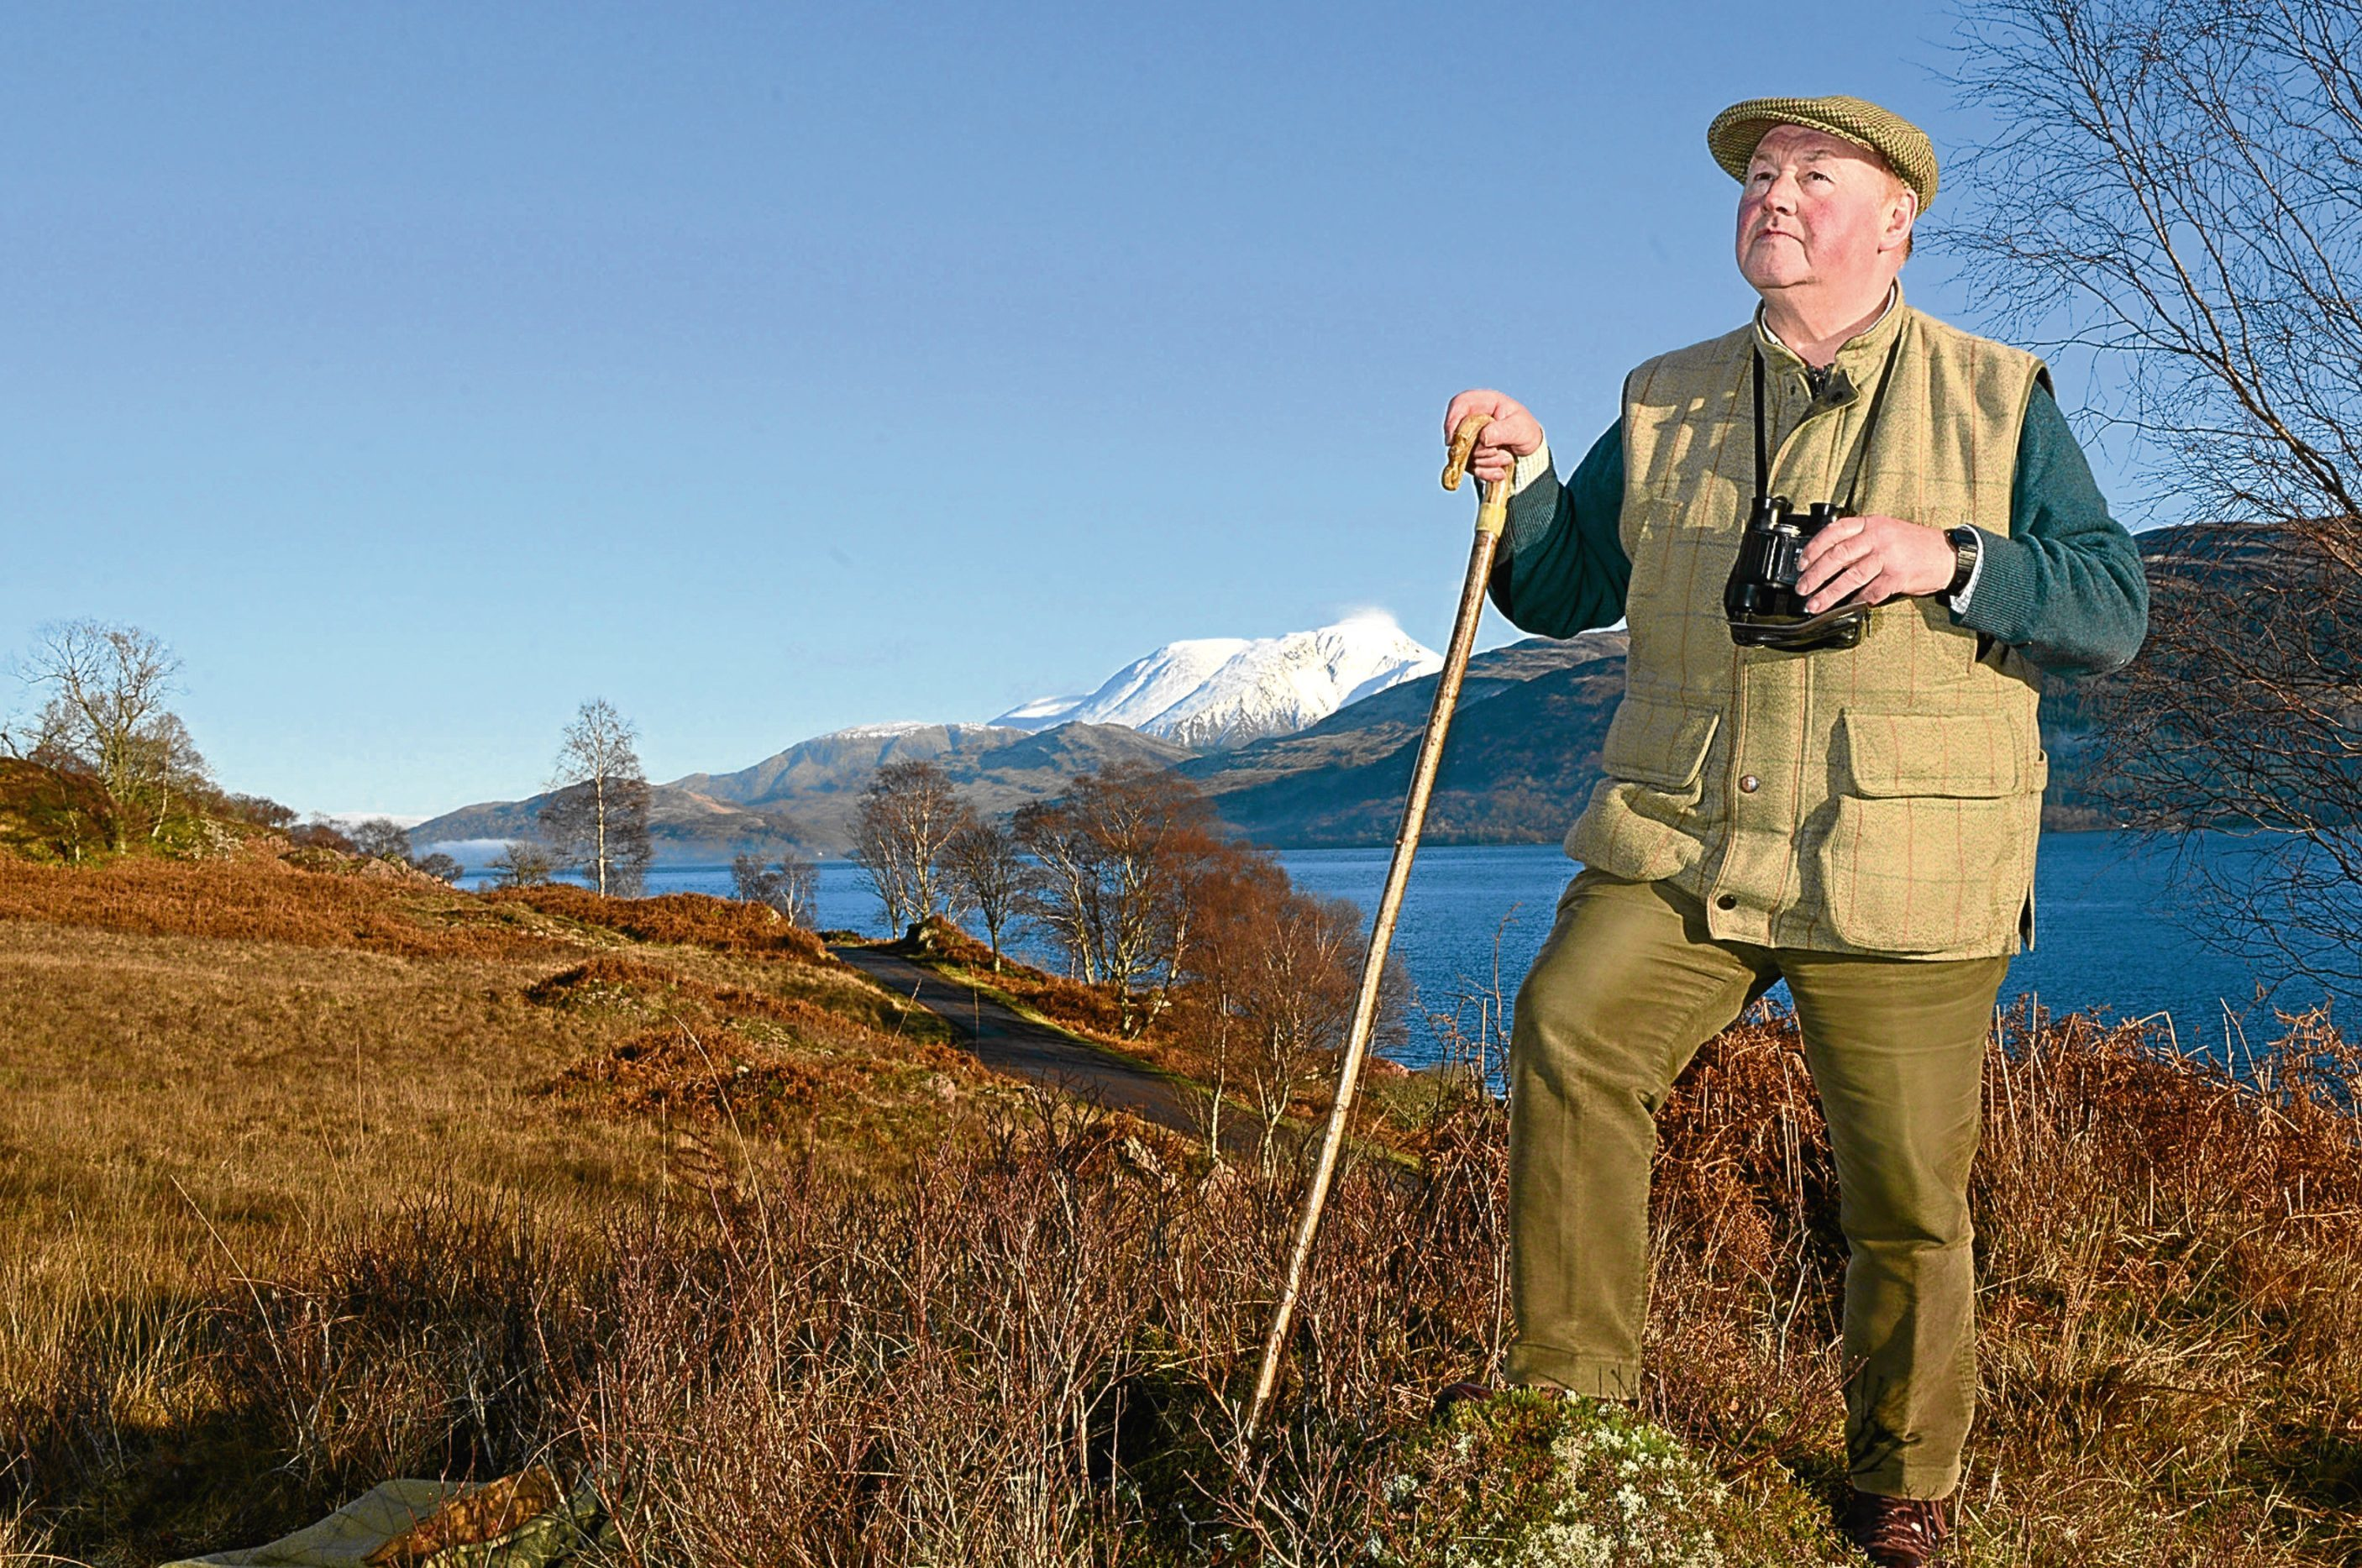 Iain Thorber in the hills around his home, which he regularly climbs. (Iain Ferguson, The Wright Image)